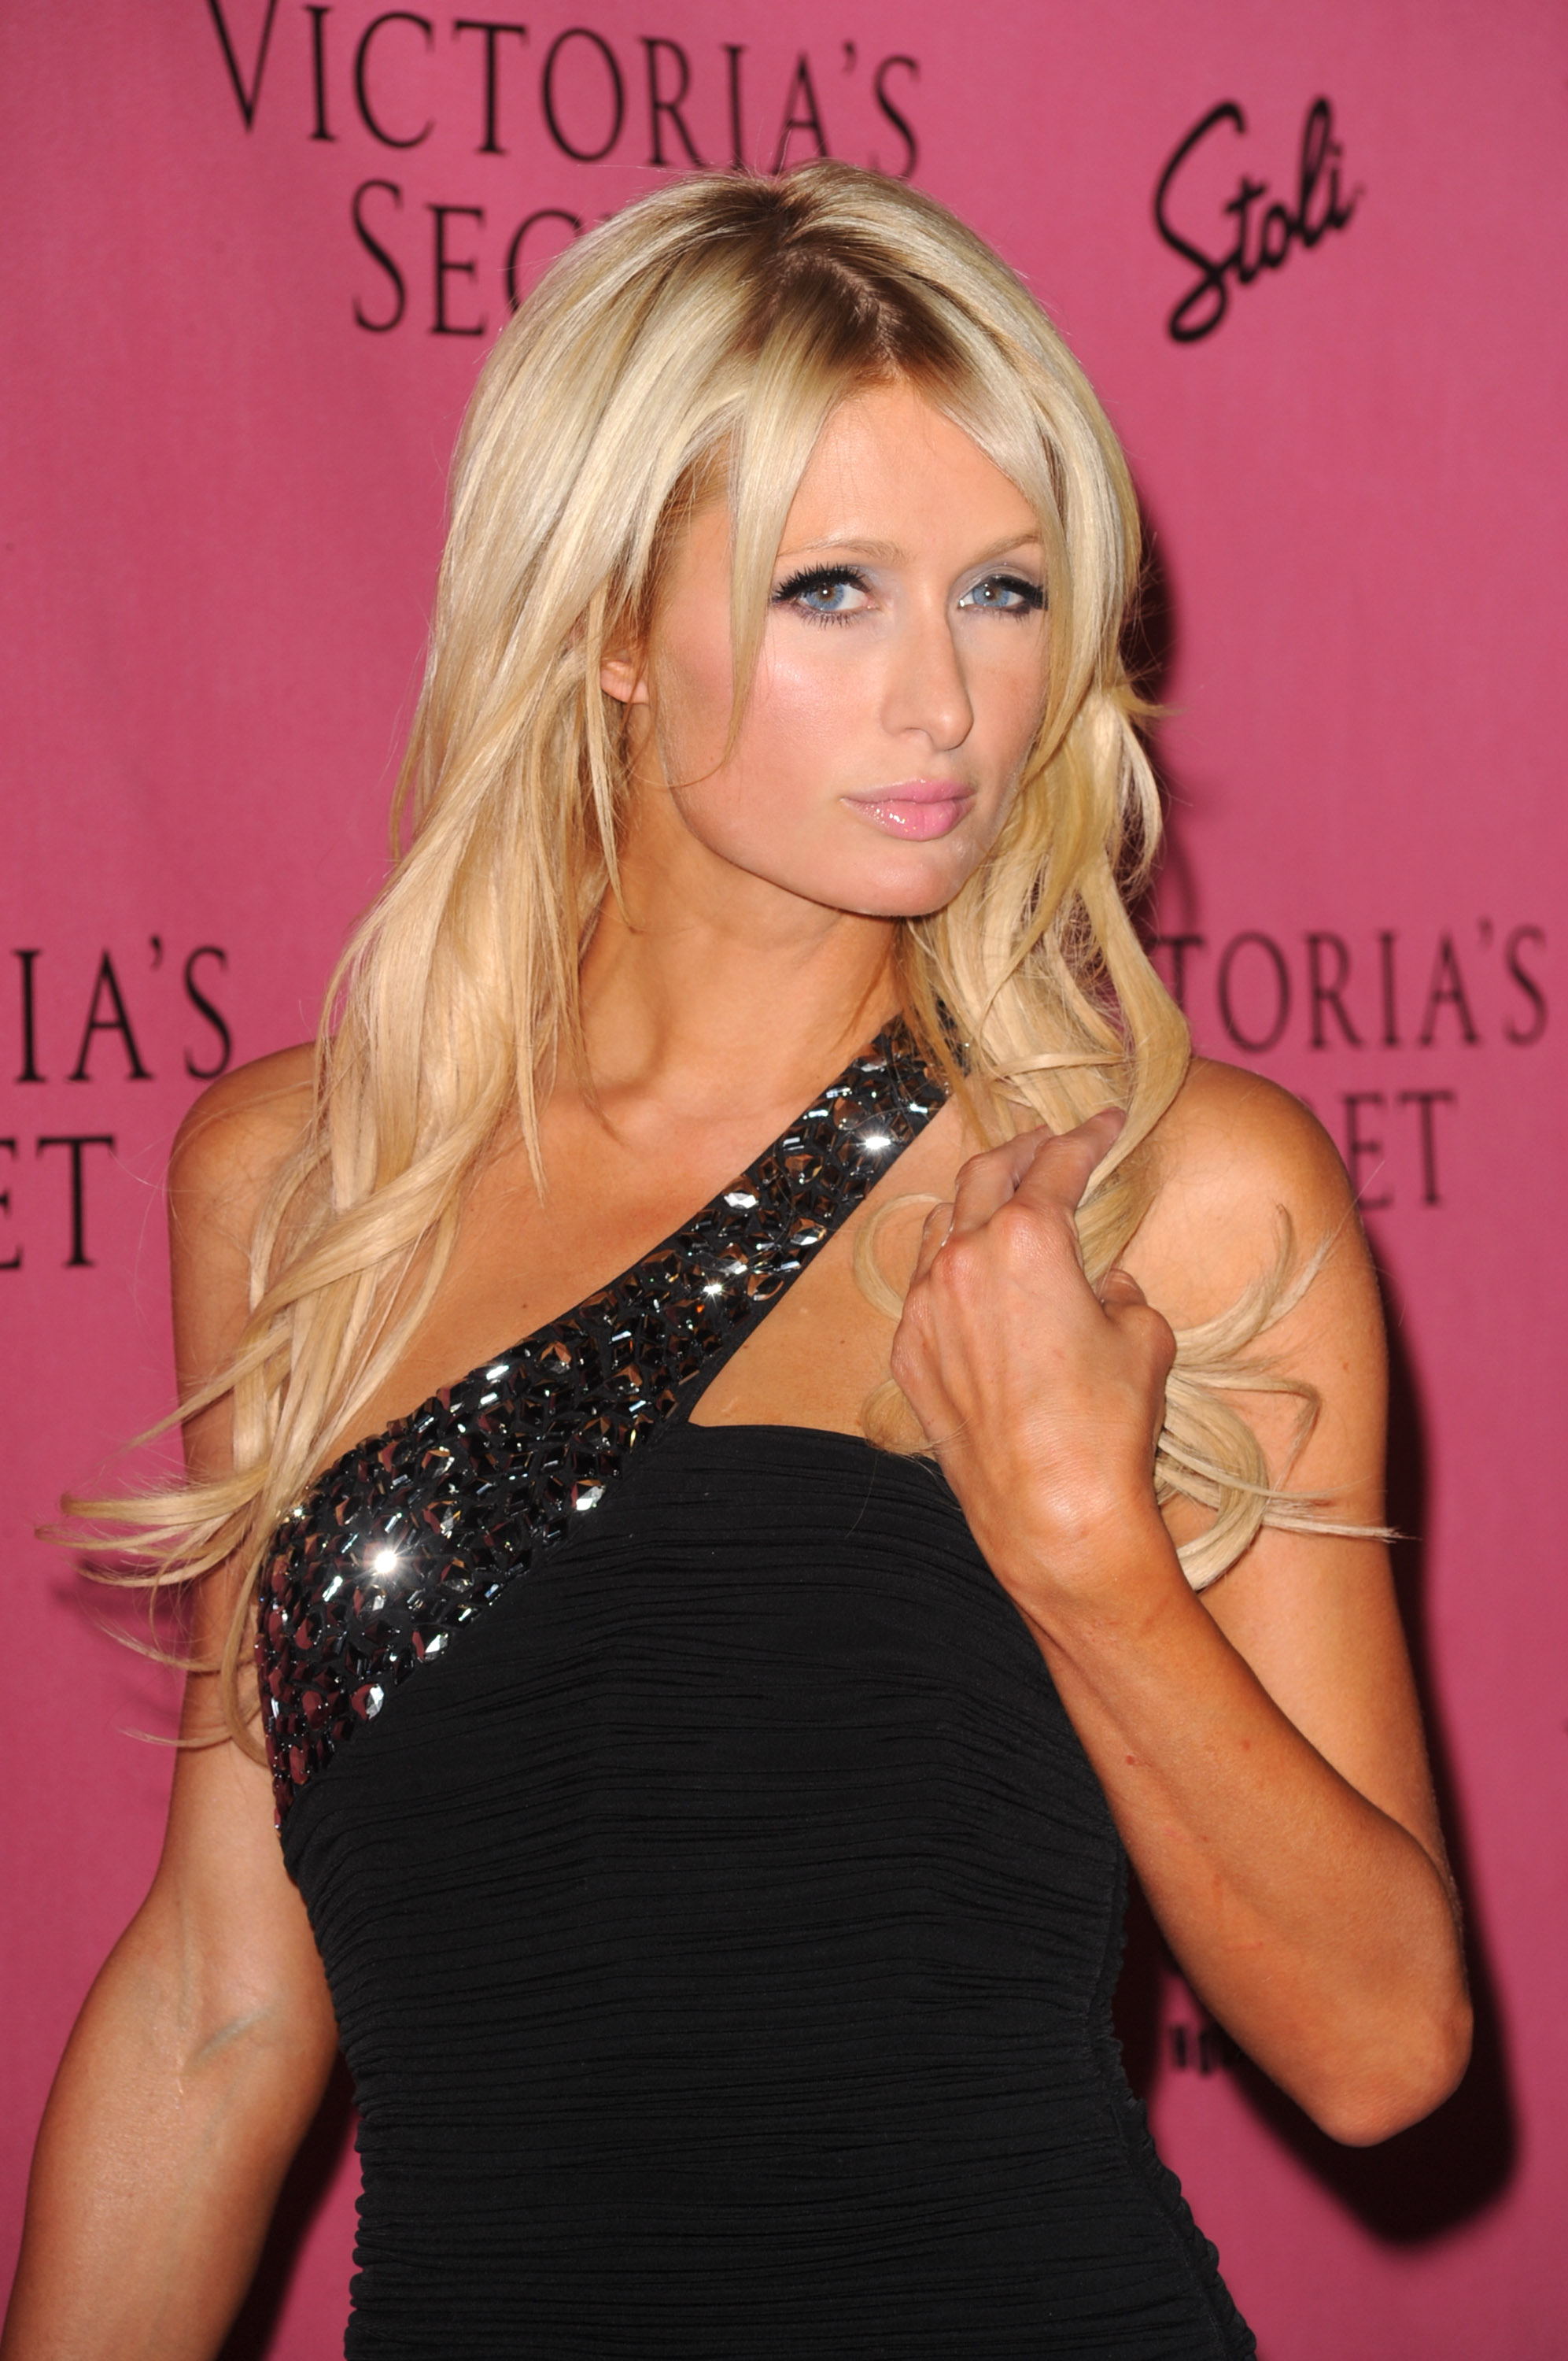 Paris Hilton 2010 : paris-hilton-at-victorias-secret-5th-annual-what-is-sexy-event-09